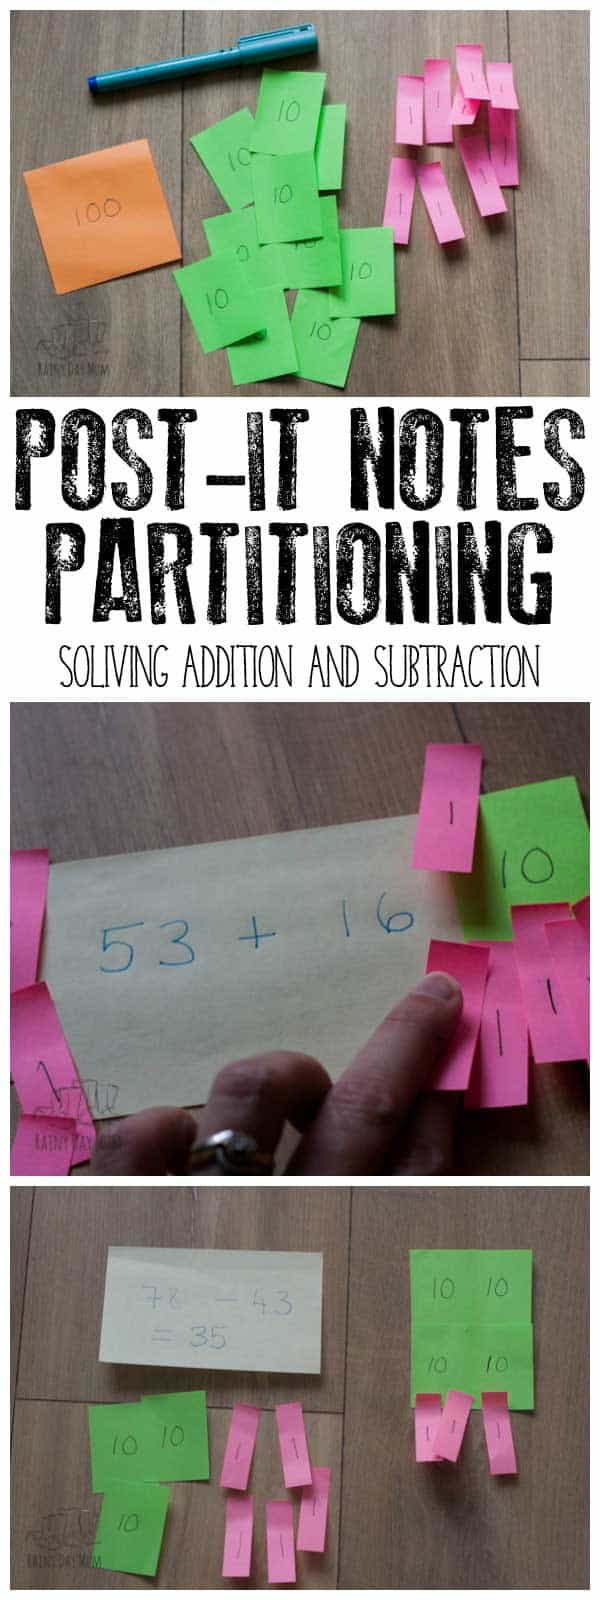 Hands-on mathematics to solve simple addition and subtraction problems with 2-Digits using partitioning and Post-it Notes.